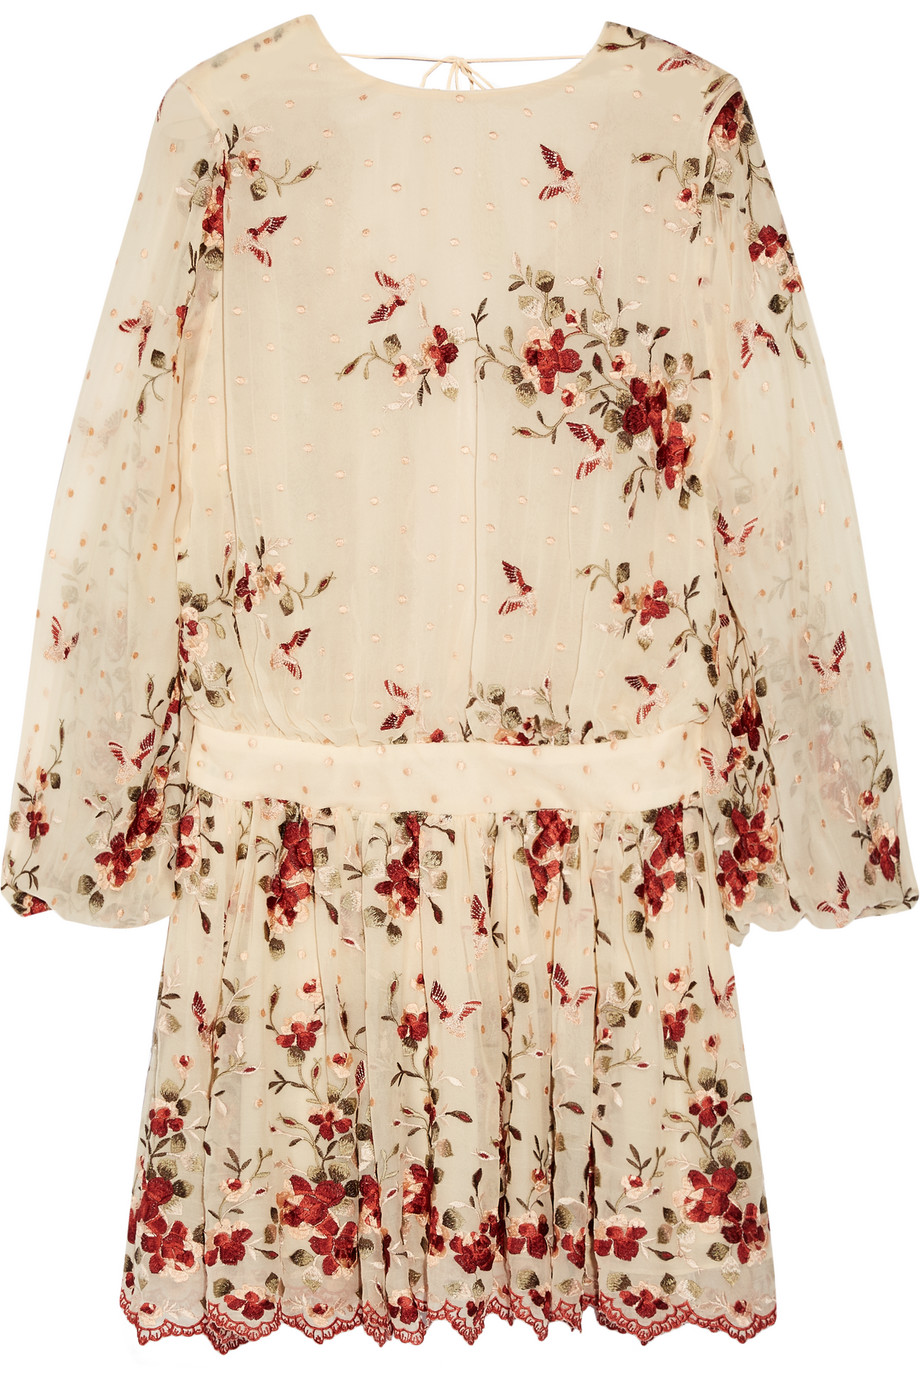 Zimmermann Sakura Embroidered Silk-Georgette Mini Dress, Cream, Women's - Embroidered, Size: 3